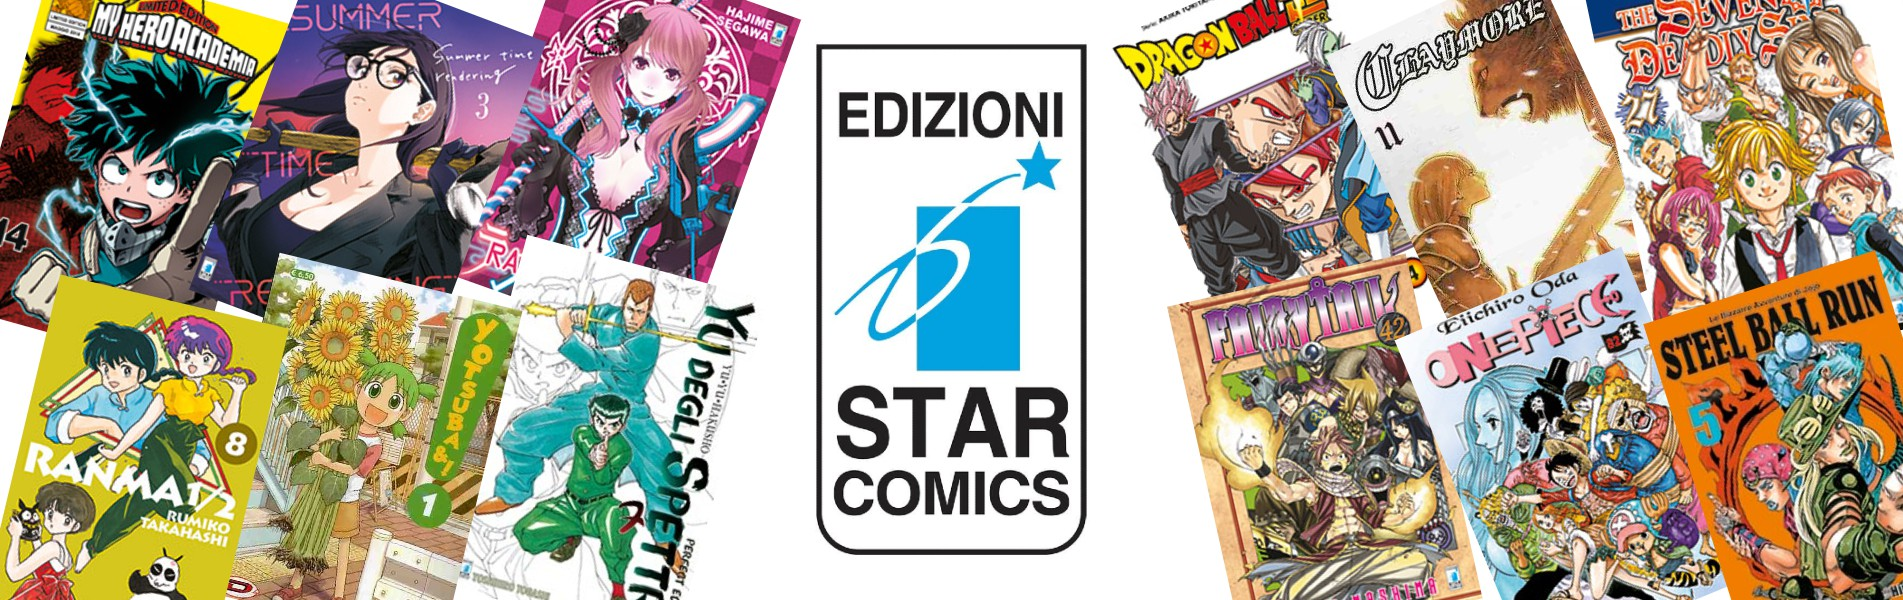 manga Star Comics